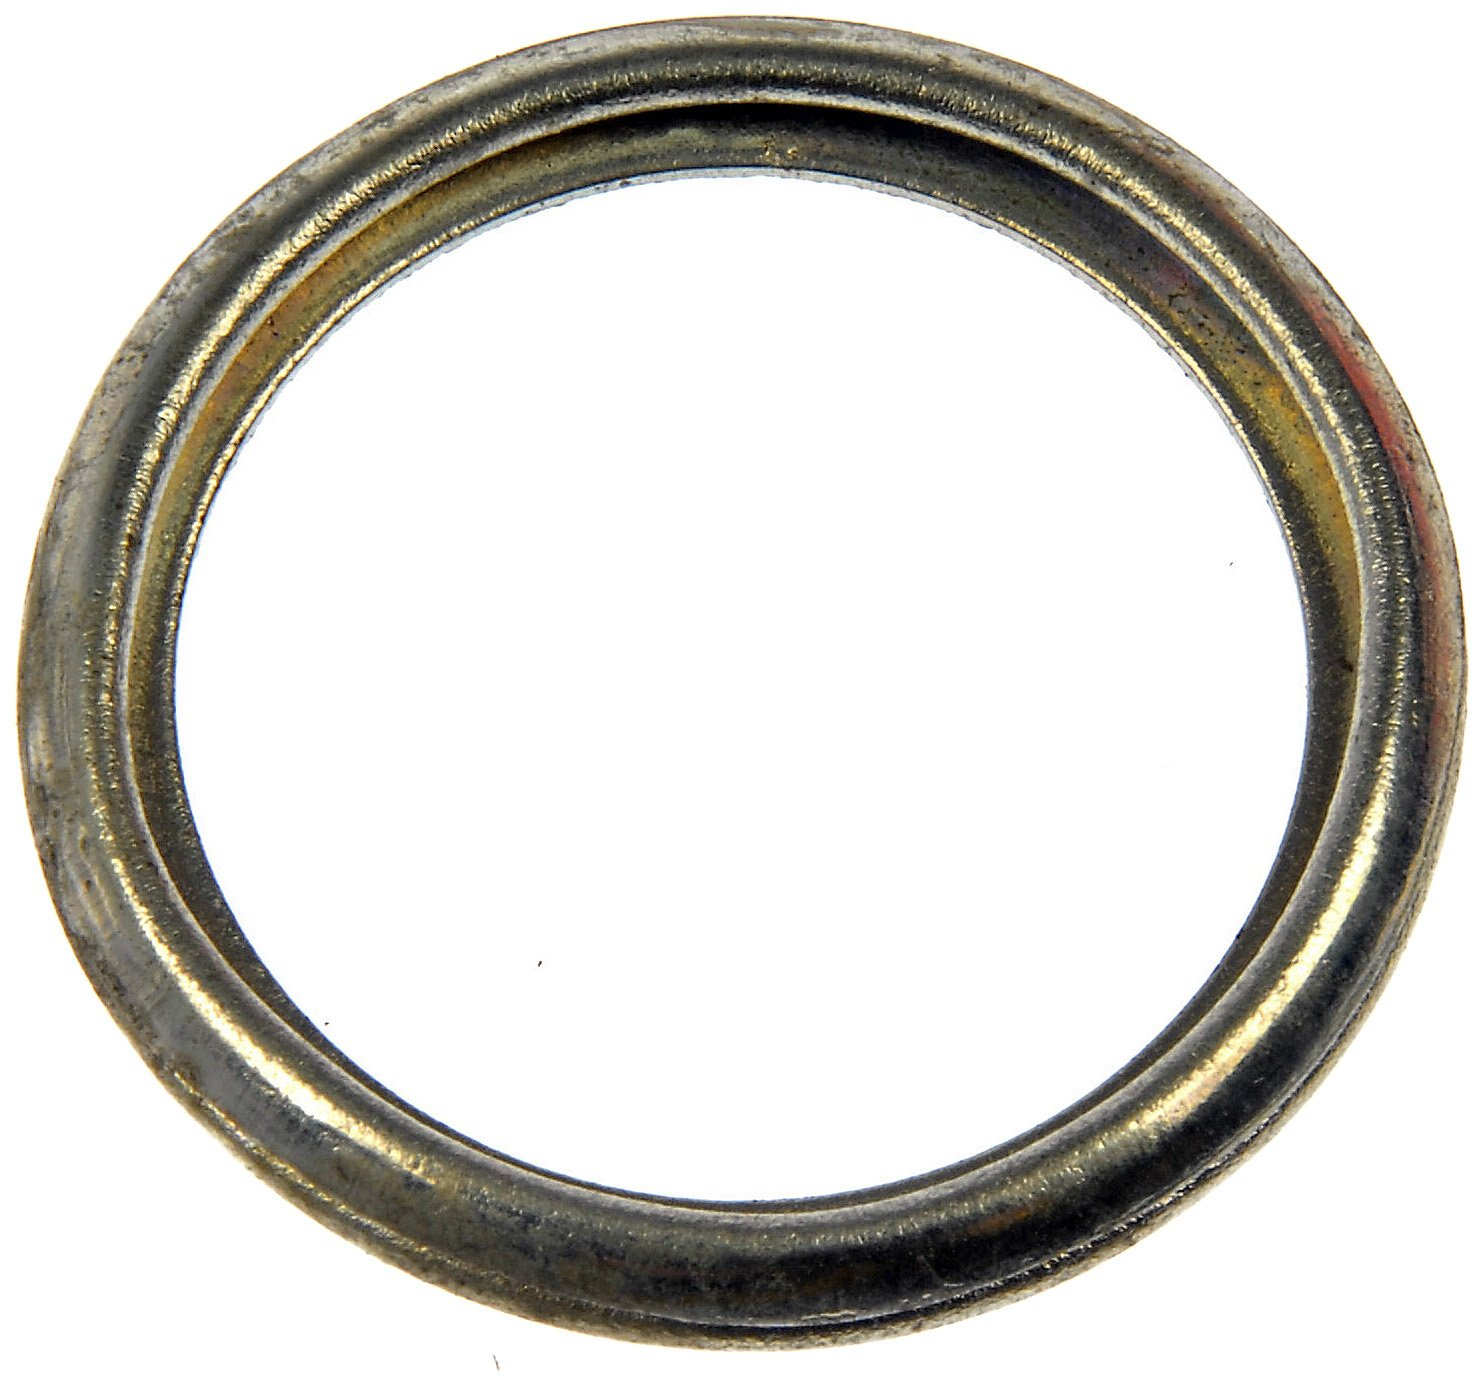 25 Copper Oil Drain Plug Gaskets 18MM I.D by A Plus Parts House 24MM O.D